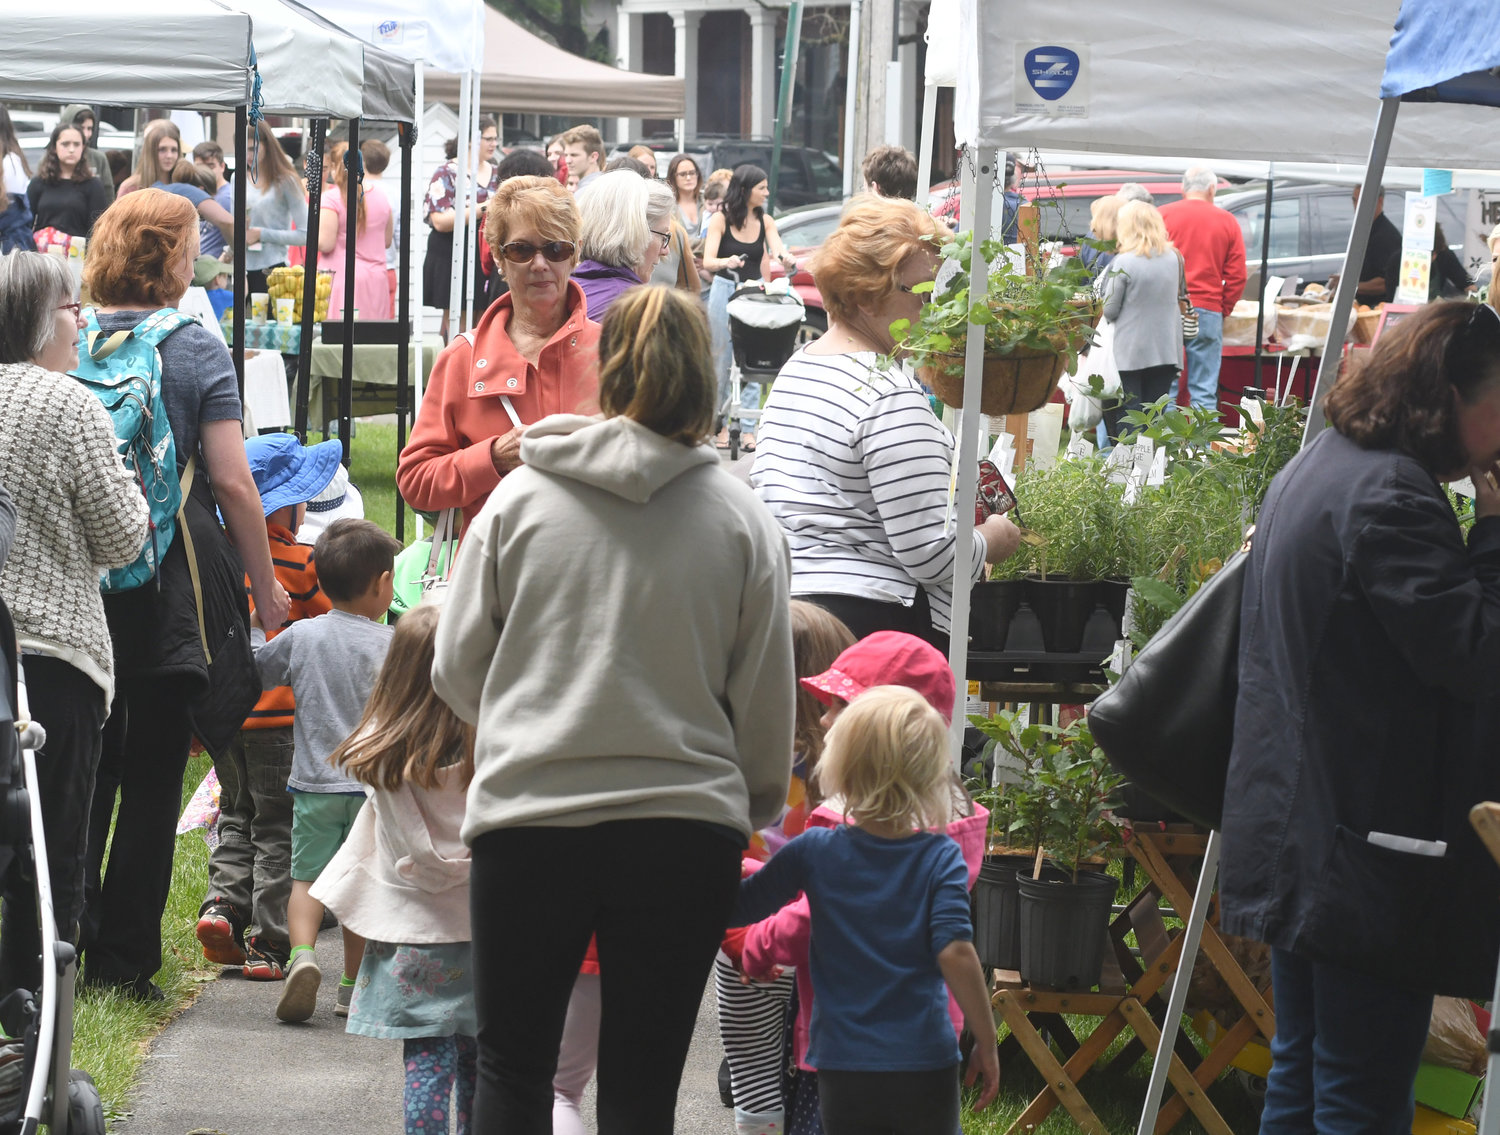 BUSTLING BUYERS — Plenty of patrons create busy sidewalks in the Village Green at last year's Clinton Farmers Market on opening day.